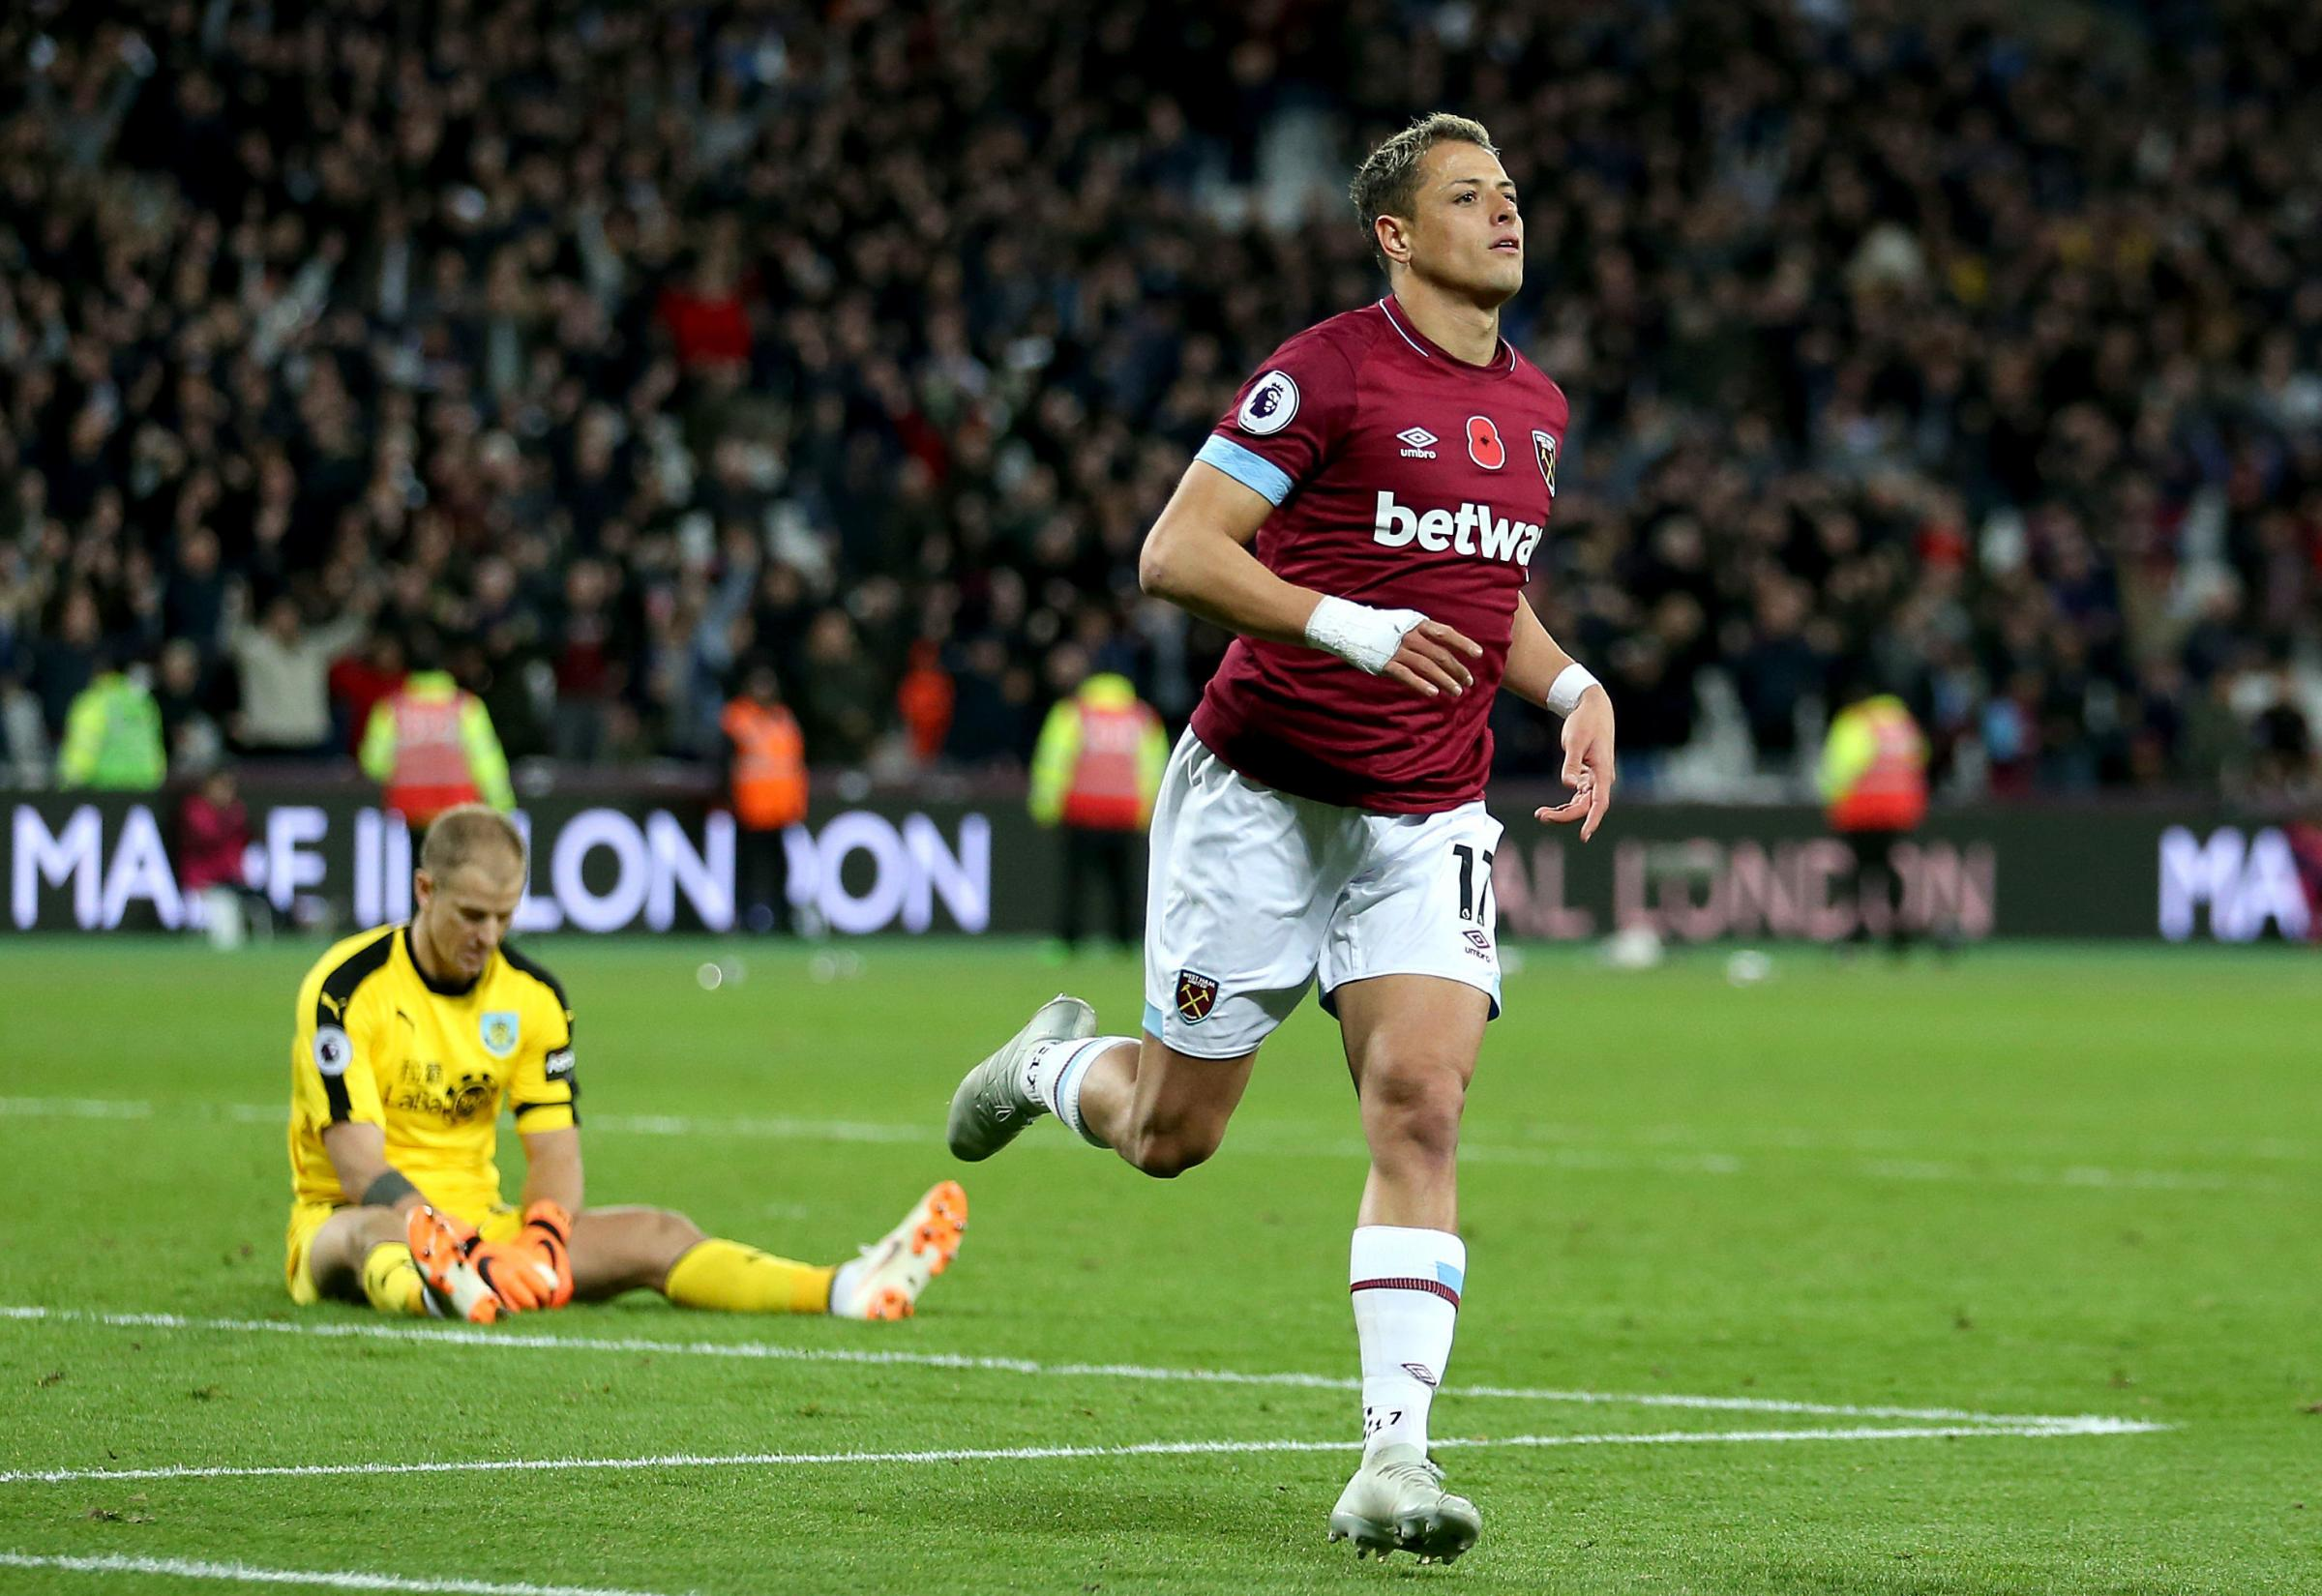 Joe Hart looks crestfallen as Javier Hernandez celebrates West Ham's fourth goal